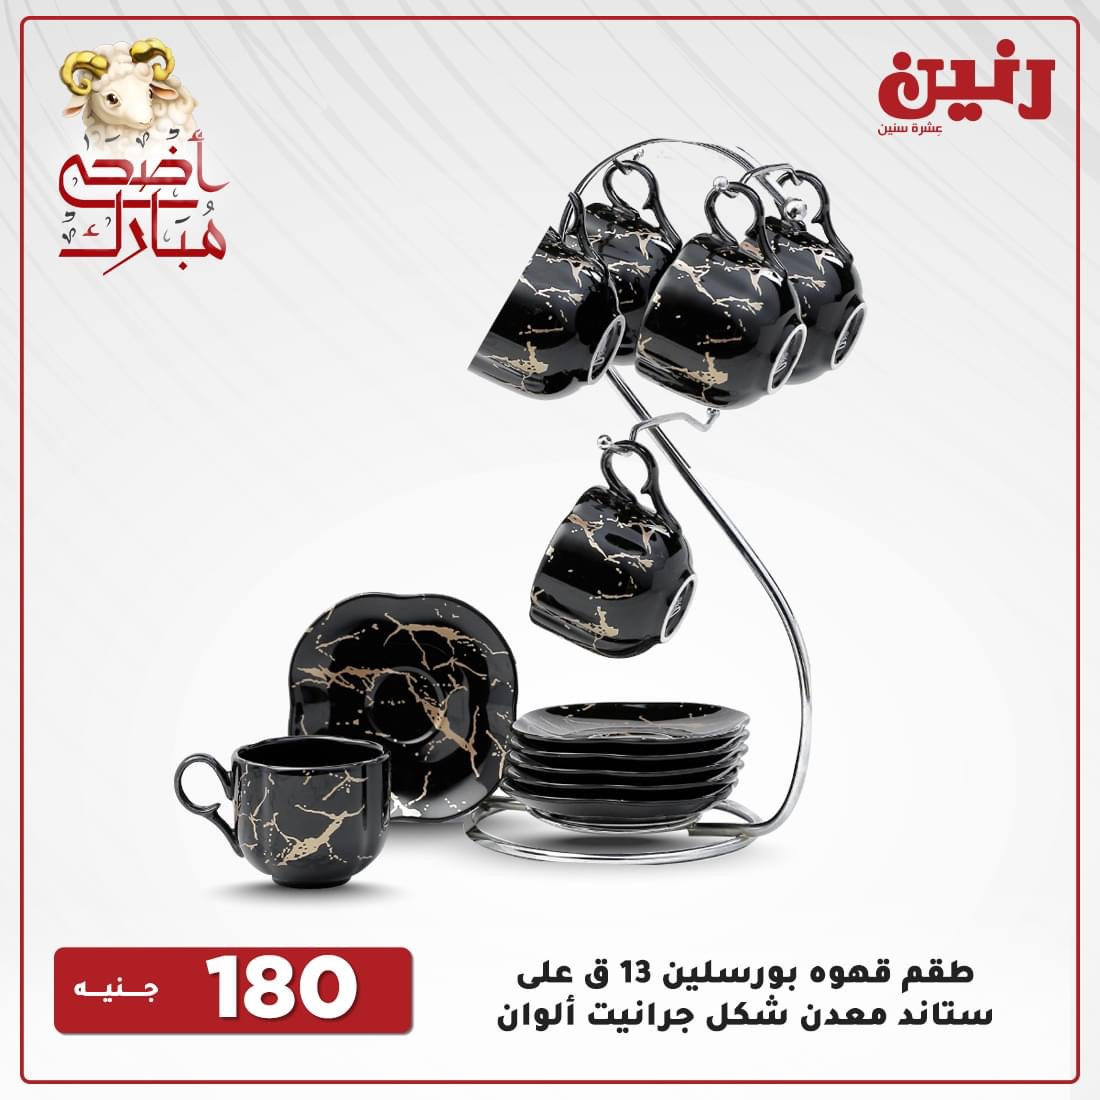 Raneen offers today for appliances and household appliances from July 22 to 24, 2021 17